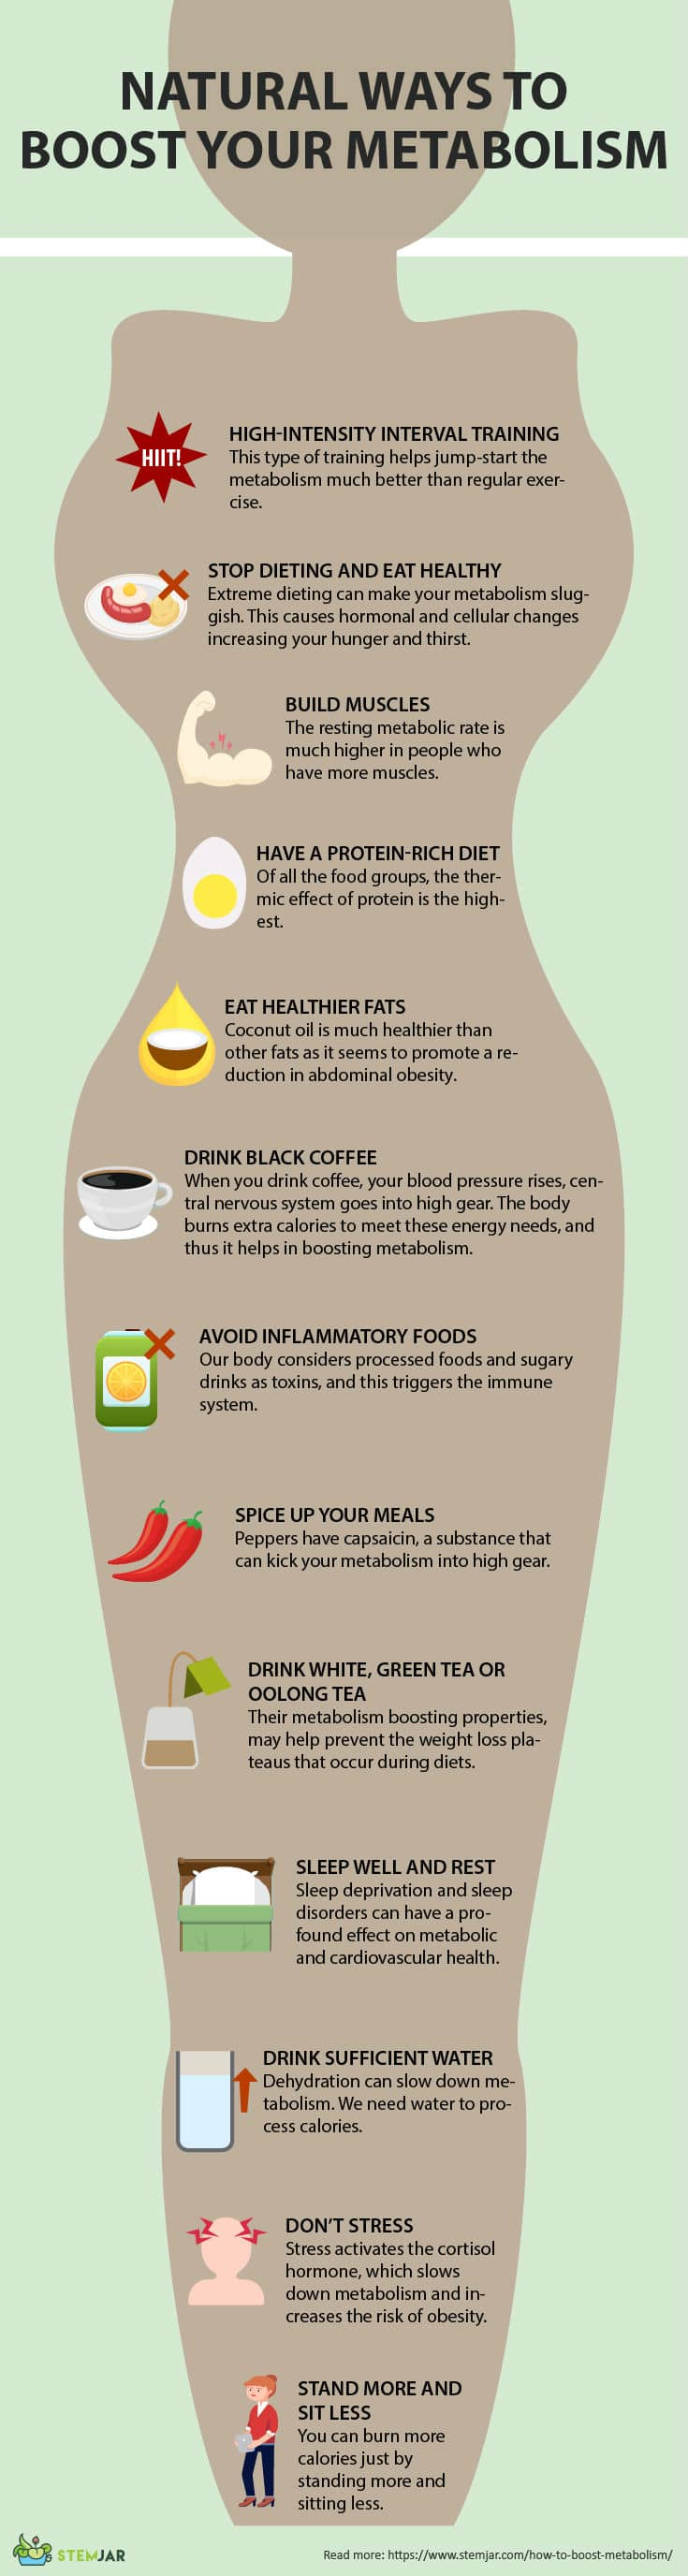 How to boost your metabolism infographic